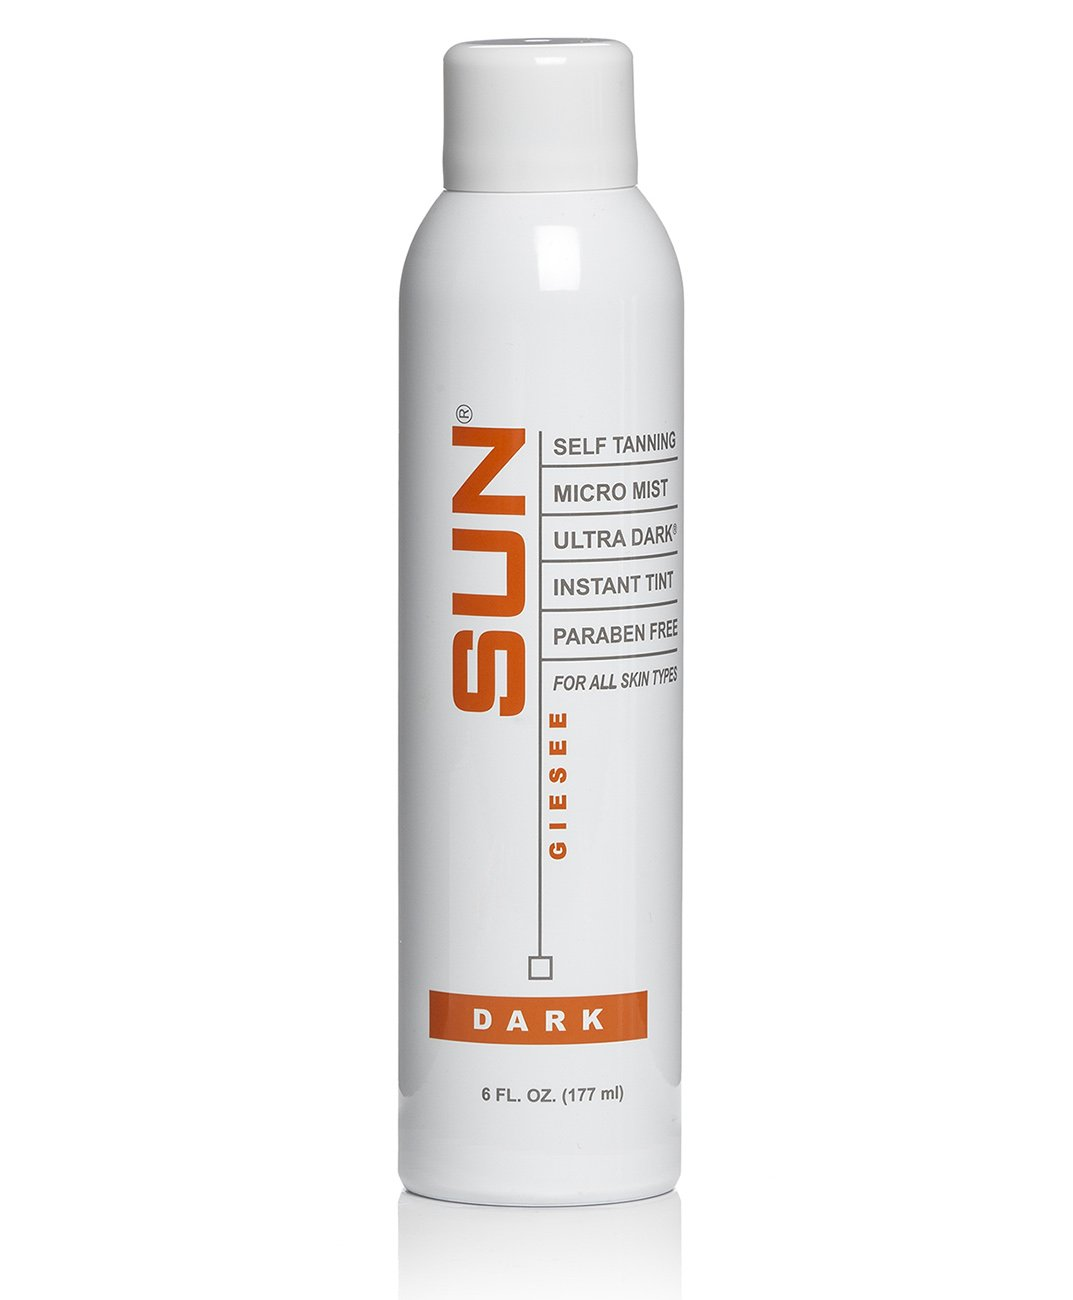 Spray On Tan Airbrush Tanning Micro Mist Spray 6 fl oz Natural Sunless Airbrush, Body and Face for Bronzing and Golden Tan - Very Dark Sunless Bronzer Flawless Fake Tanning Airbrush | Sunless Tan